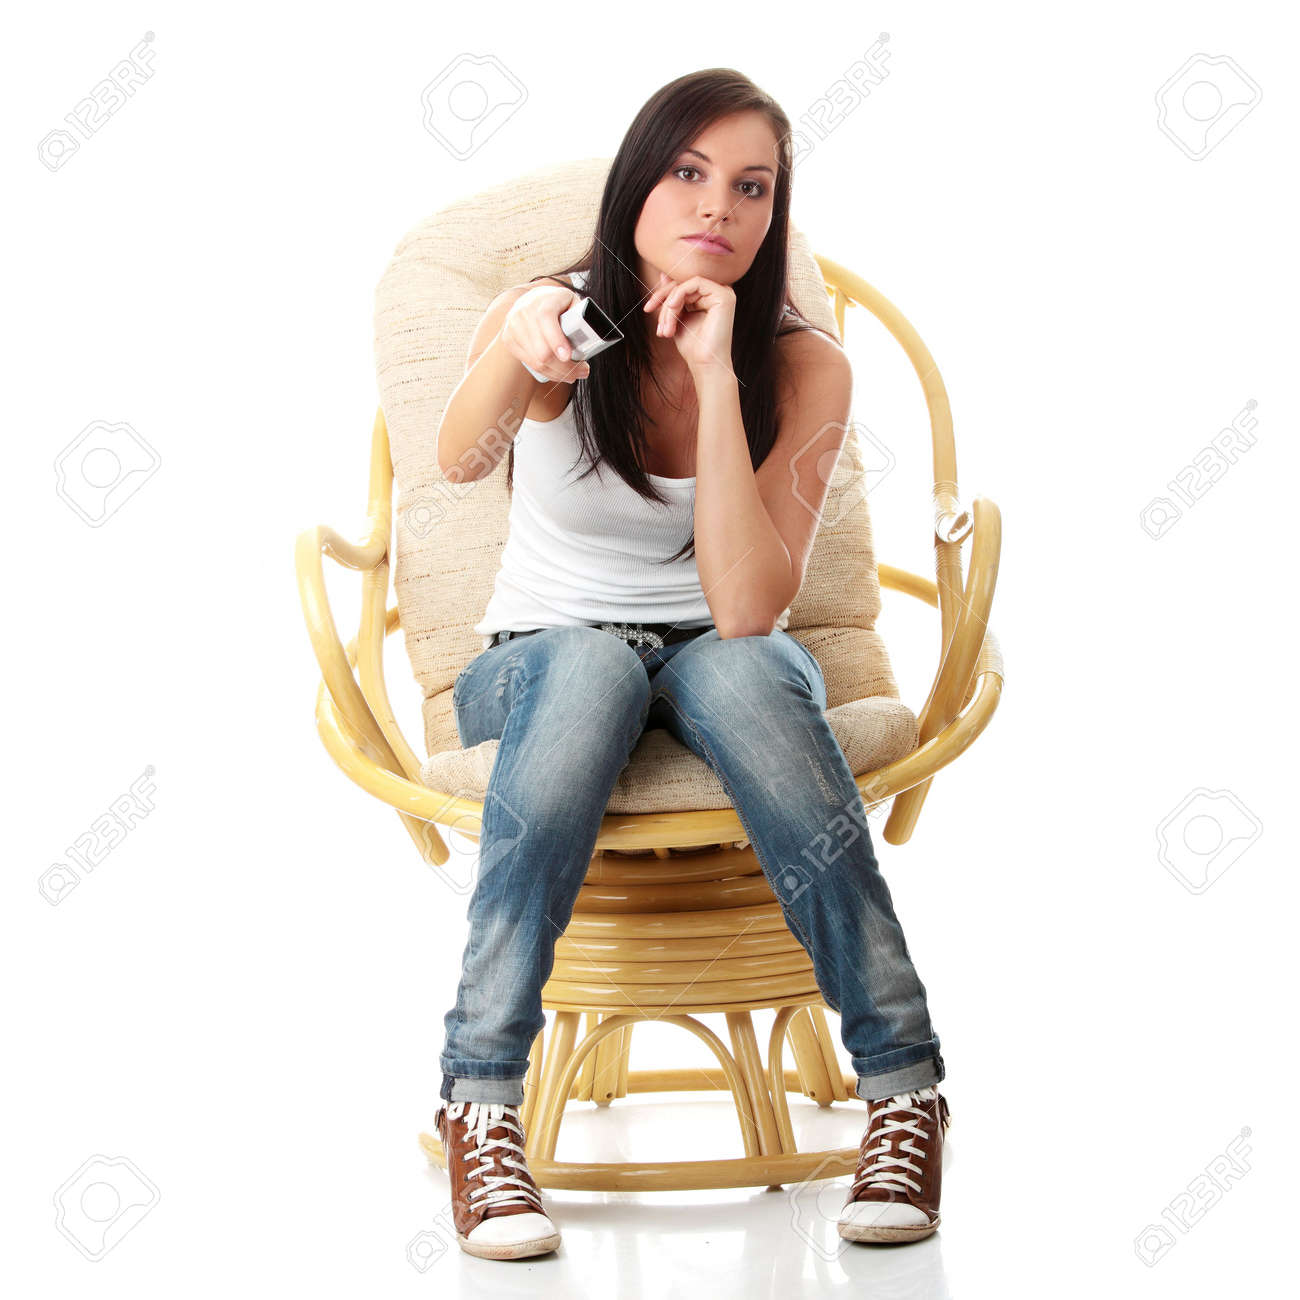 Young woman watching TV with remote control in hand while sitting on armchair isolated - view from TV - Change the channel concept Stock Photo - 5930020